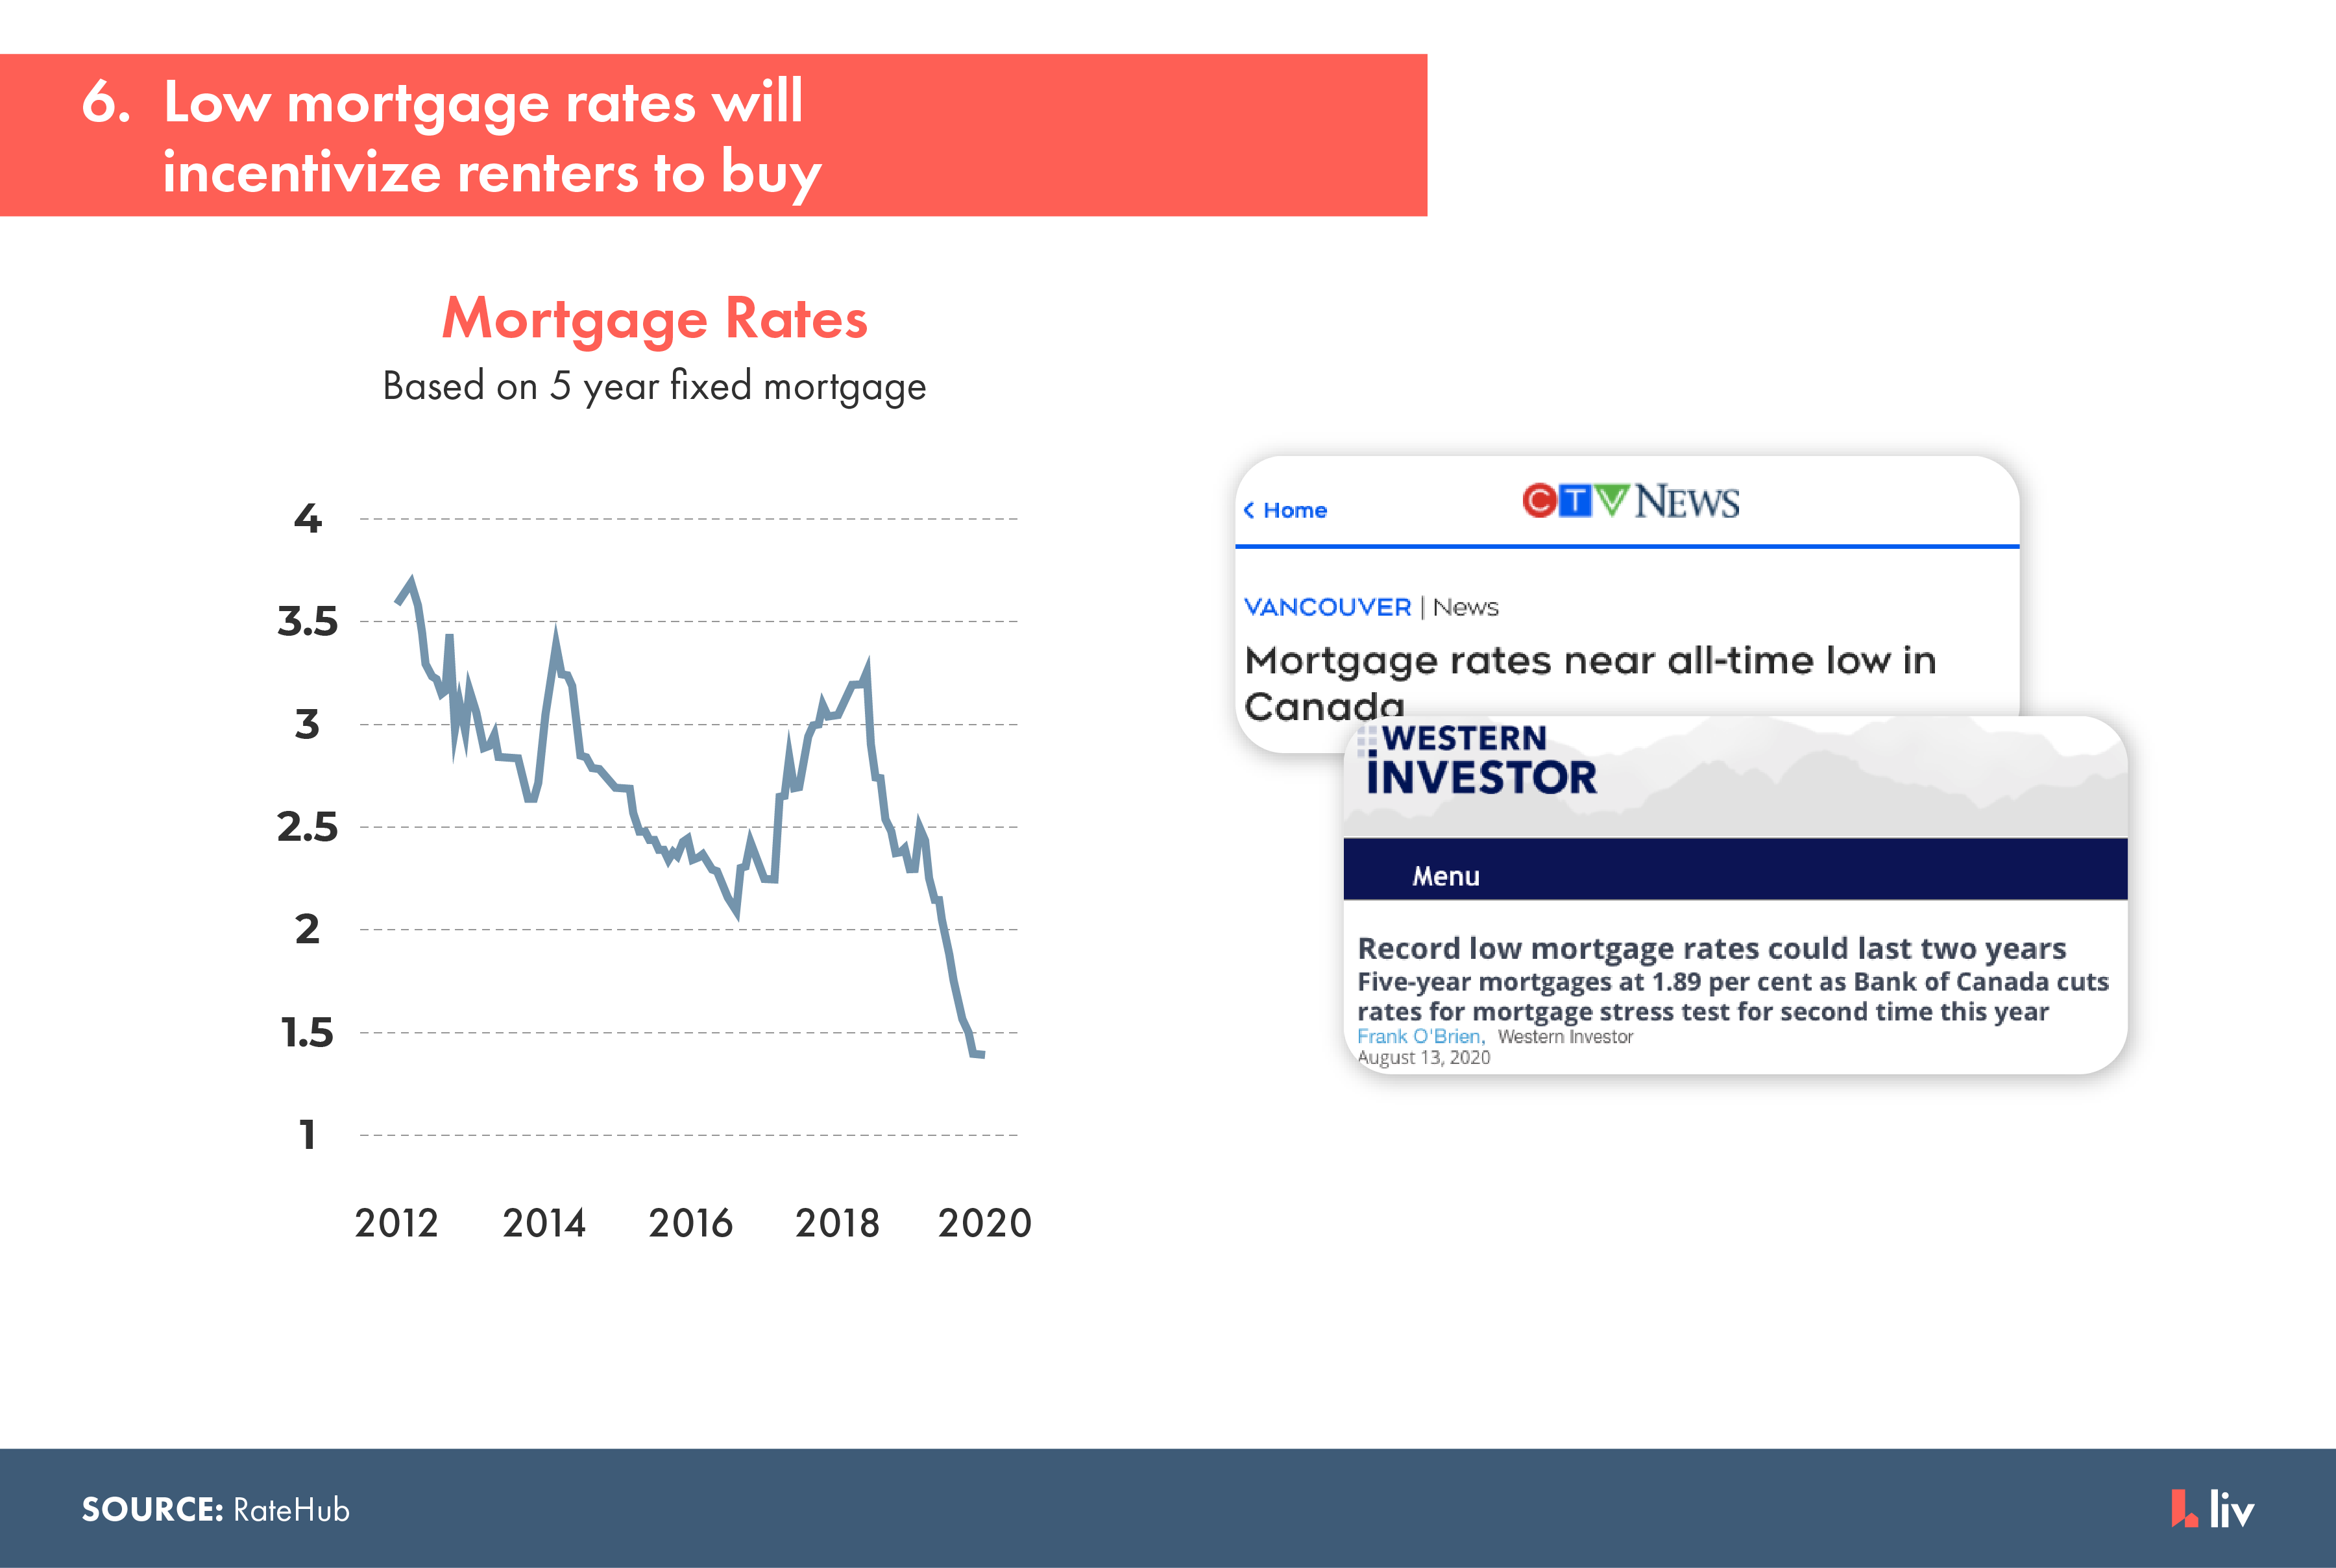 low mortgage rates will incentivize renters to buy